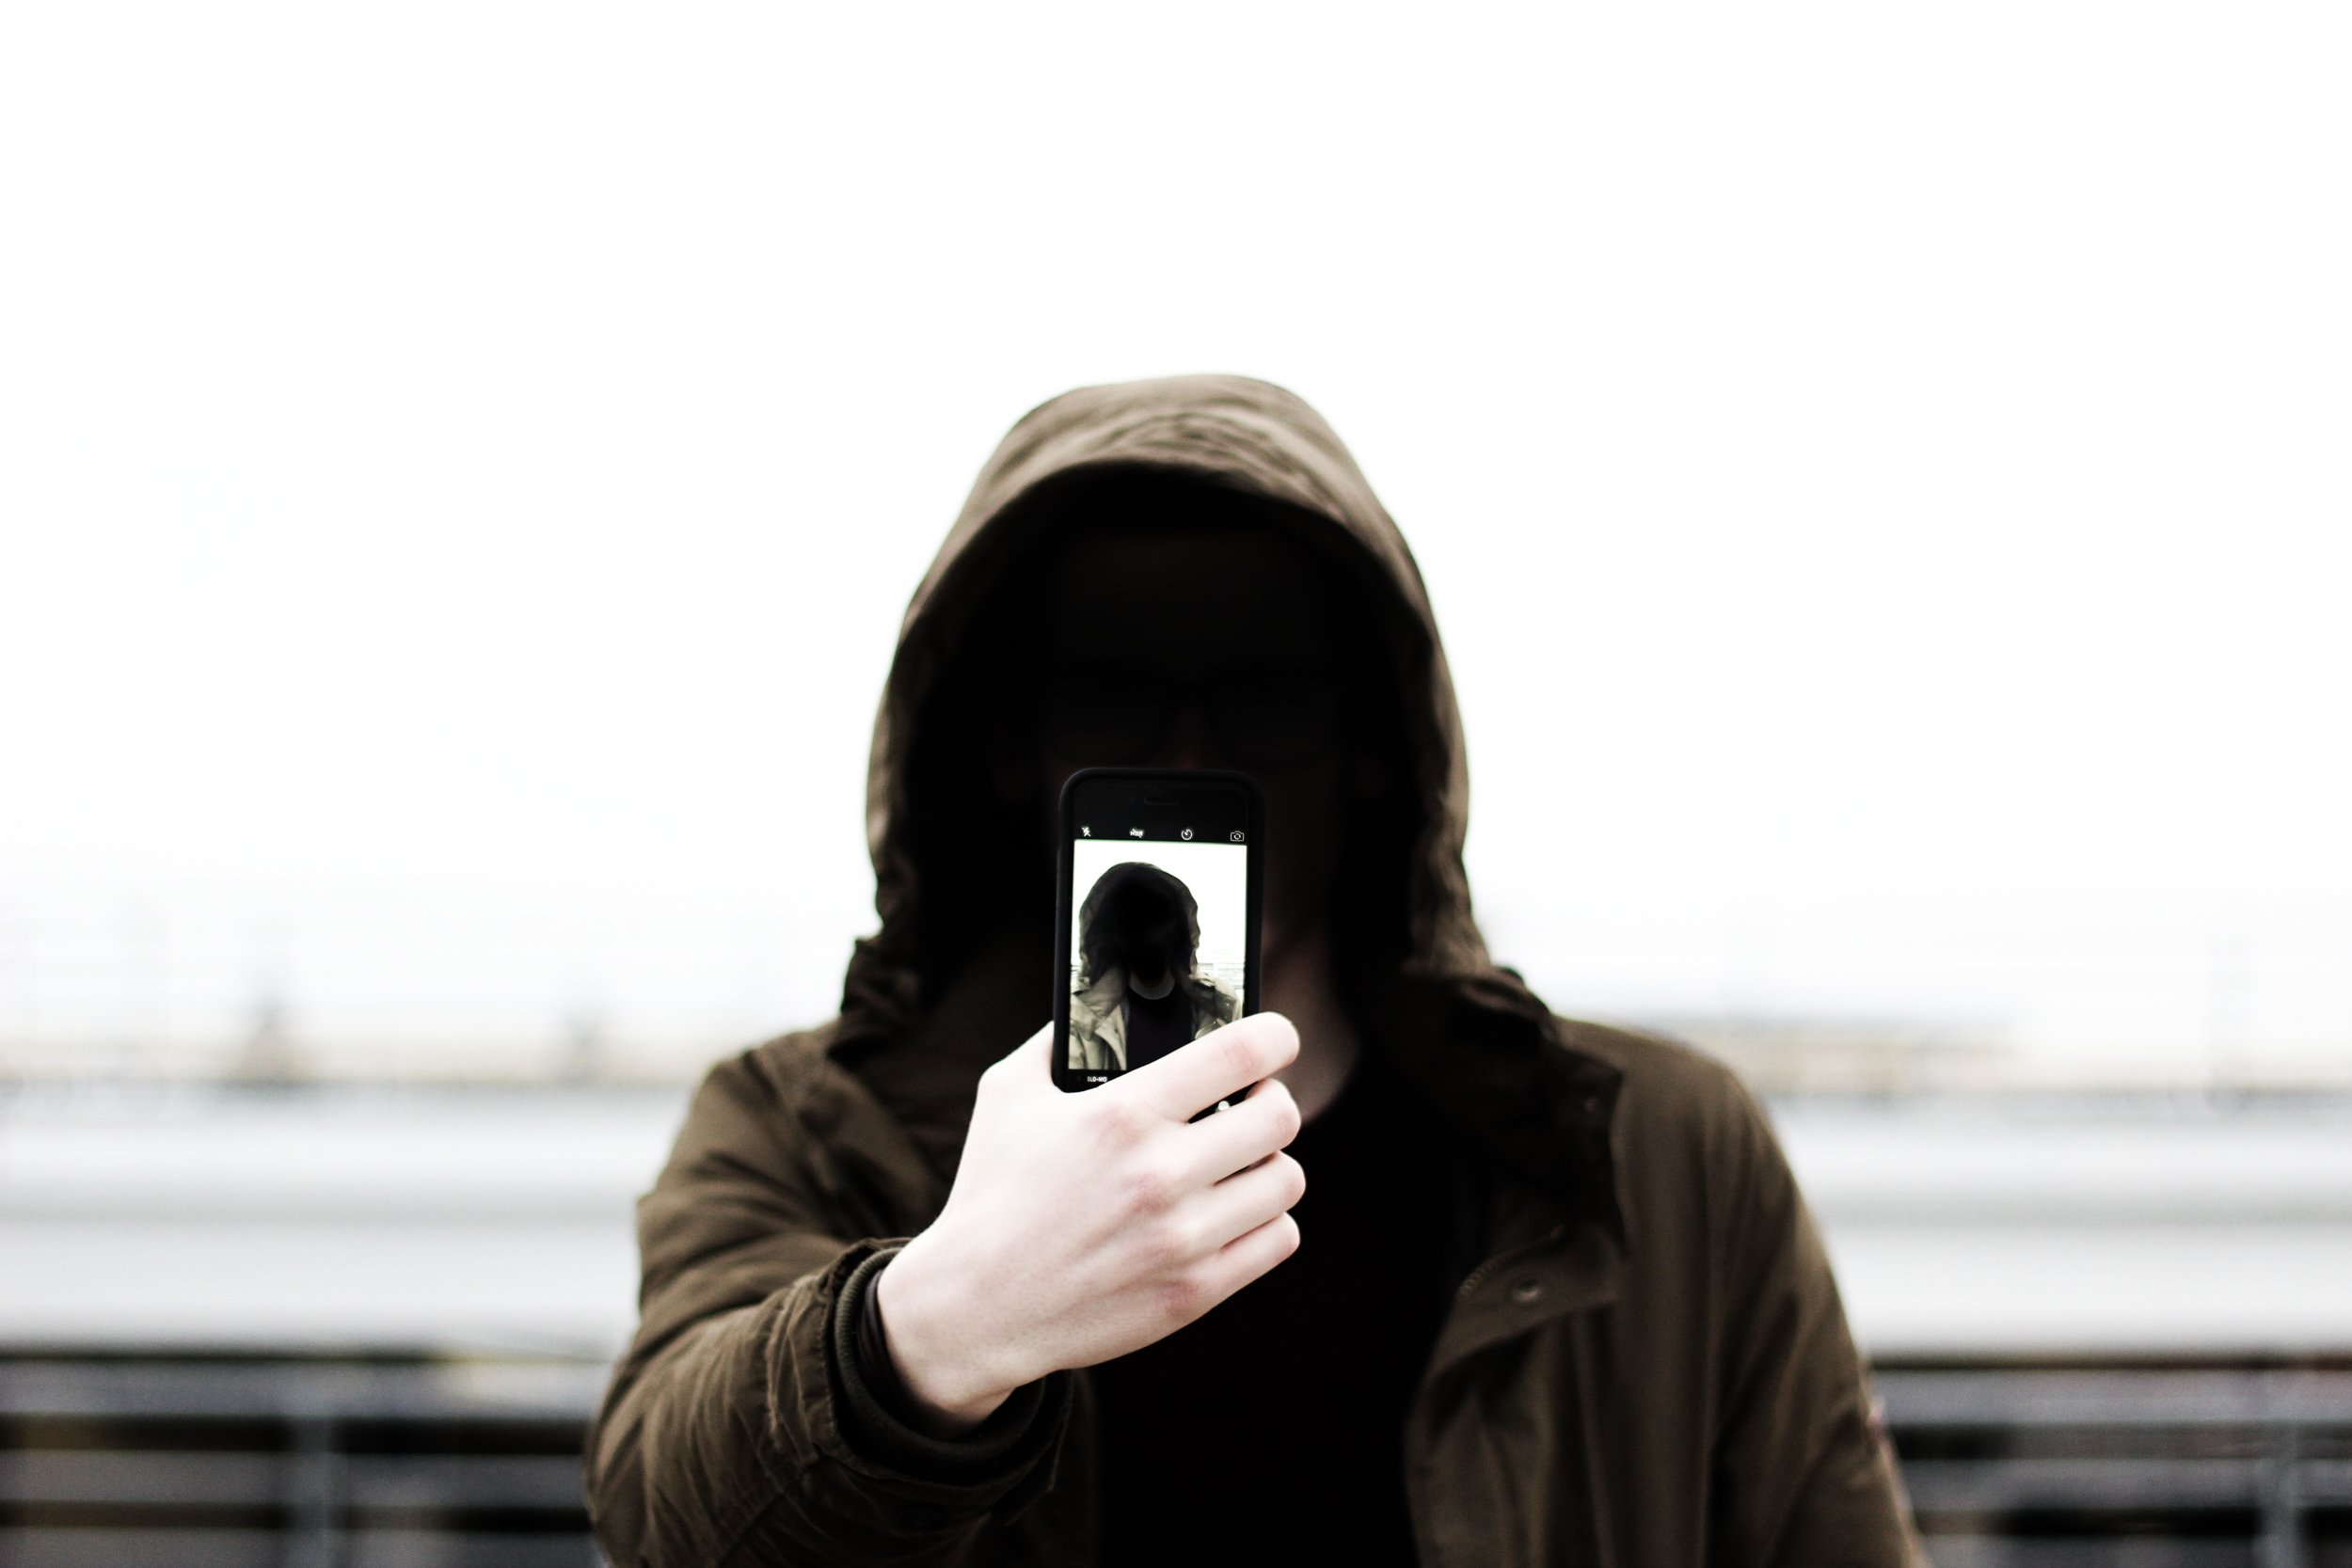 www.mgmstraining.ie/hooded man holding phone in front of his face